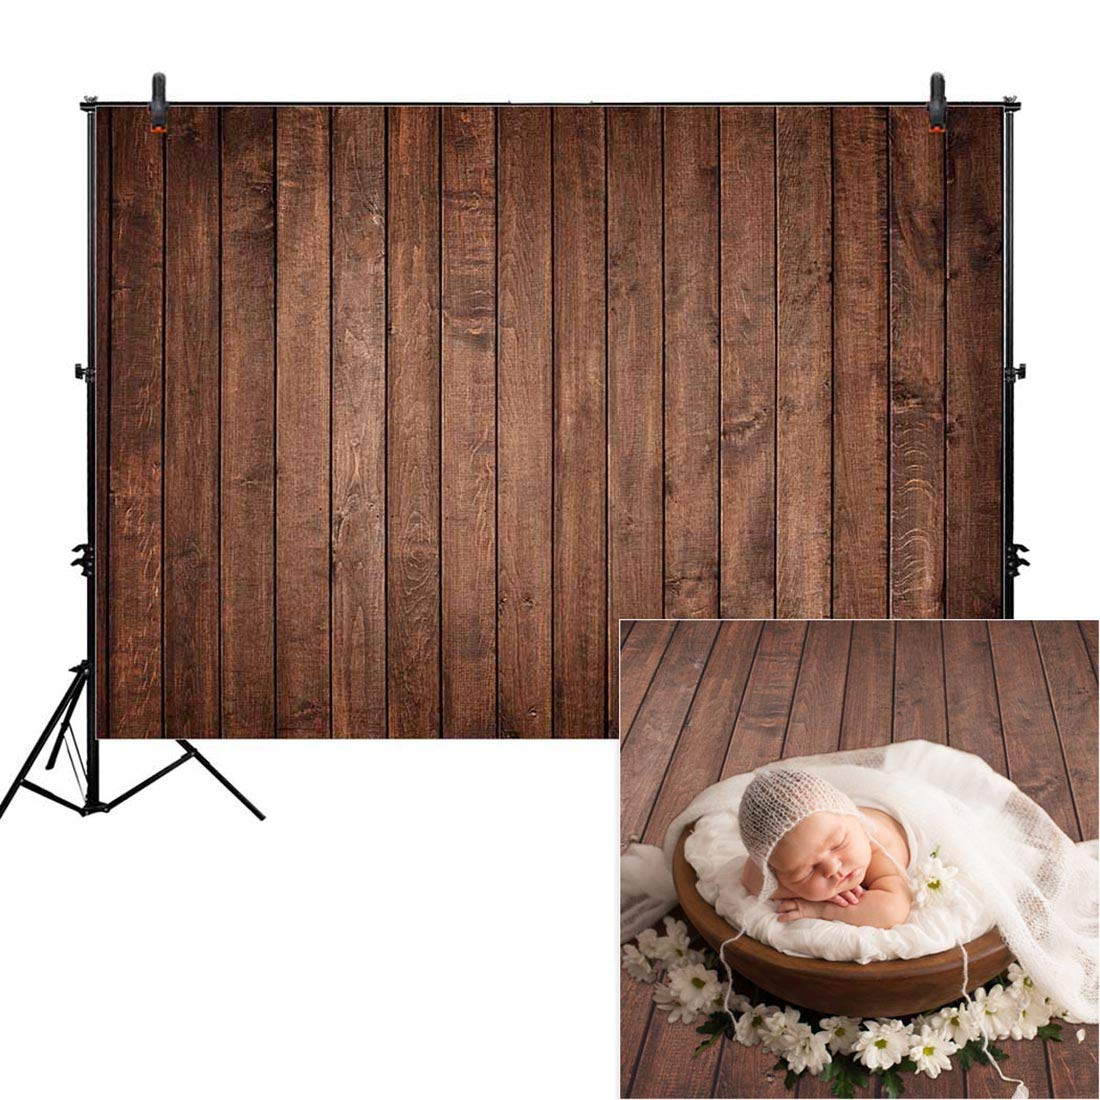 Allenjoy 7x5ft Fabric Vintage Brown Wood Backdrops for Newborn Photography Wrinkle Free Rustic Russet Grunge Wooden Floor Planks Wall Baby Portrait Still Life Product Photographer Photo Studio Props